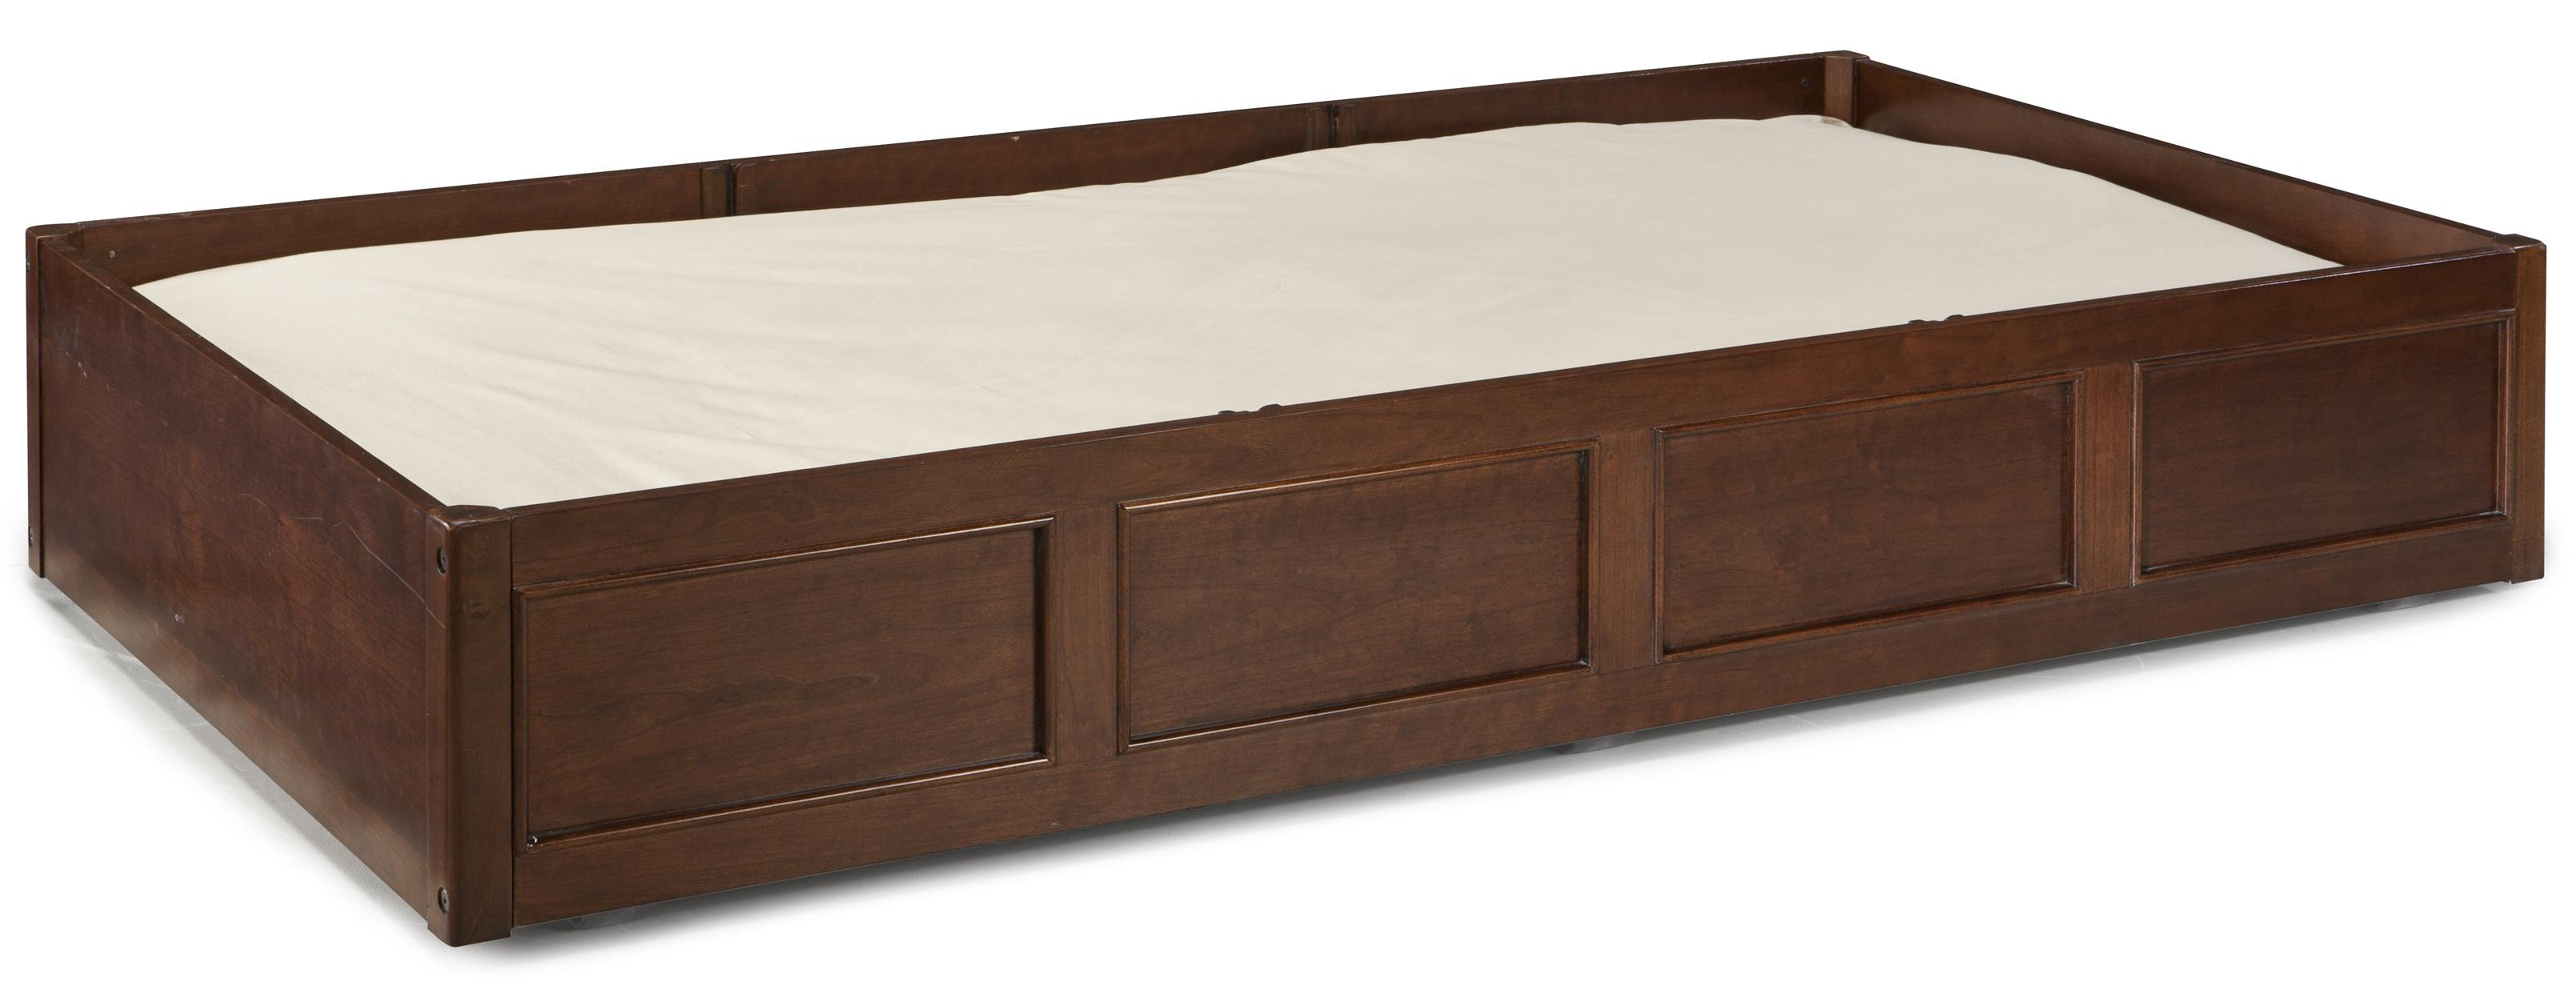 Legacy Classic Kids Impressions Trundle/Storage Drawer - Item Number: 2880-9500